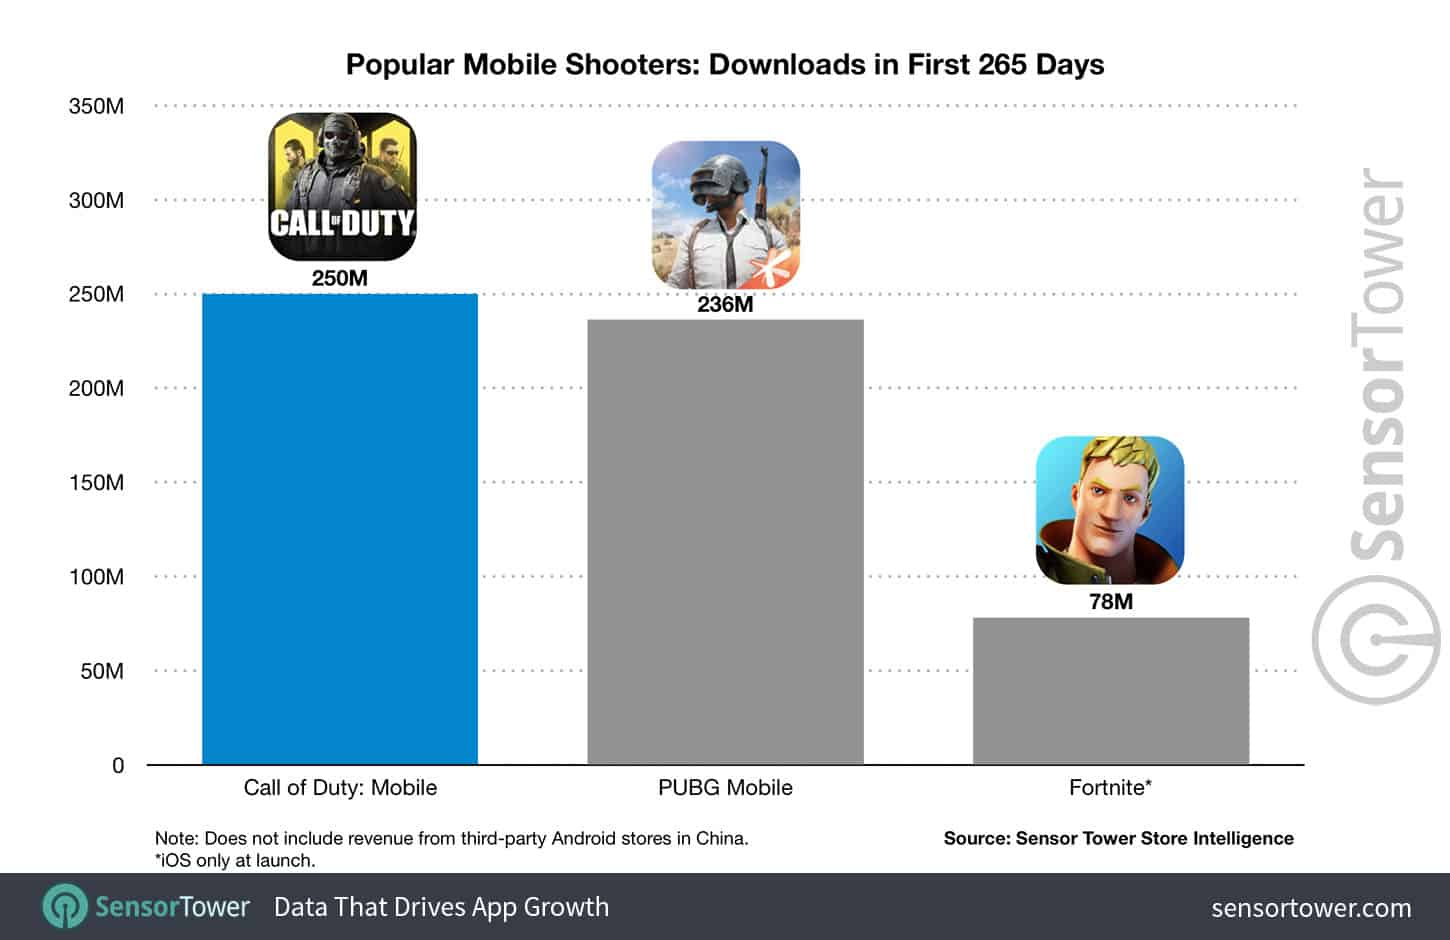 Call of Duty Mobile Download Numbers 8 Months